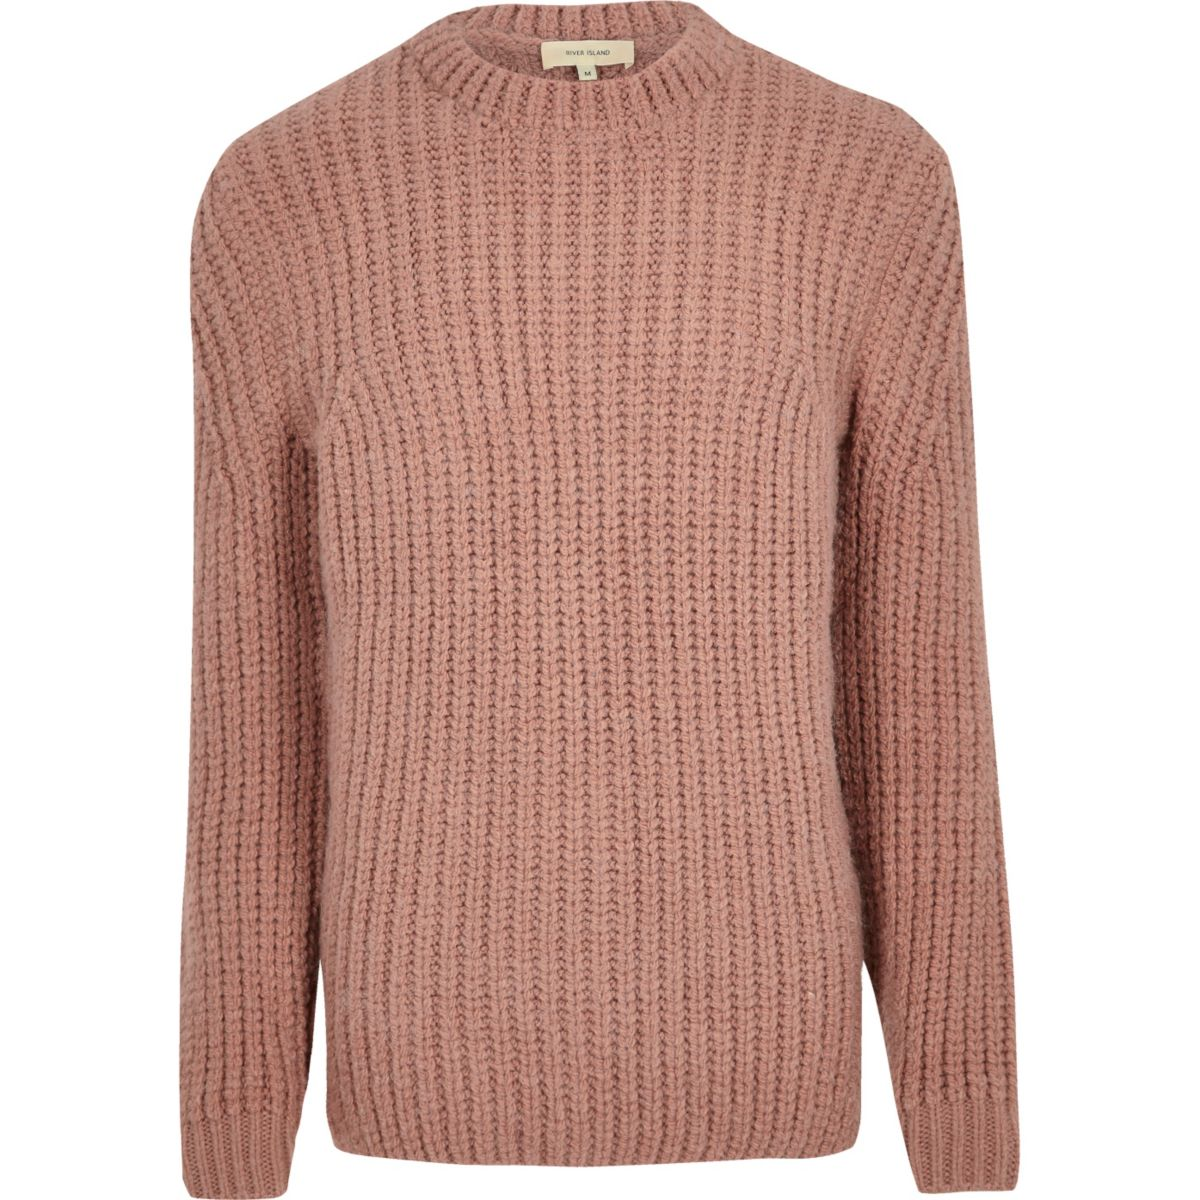 Pink chunky knit jumper